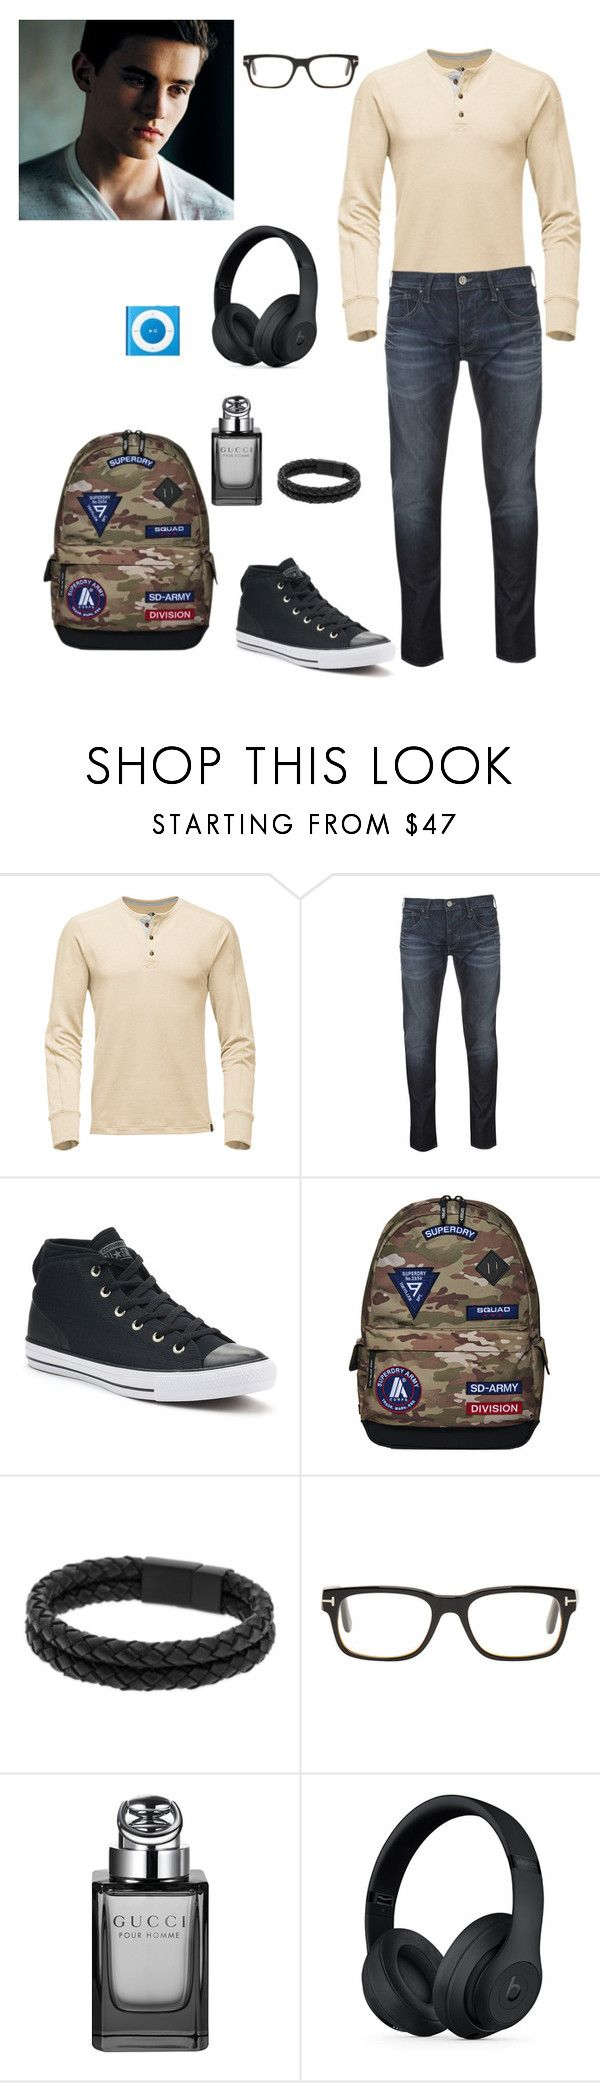 """corey"" by shyanne-andrade ❤ liked on Polyvore featuring Armani Jeans, Converse, Superdry, Vitaly, Tom Ford, Gucci, Beats by Dr. Dre, men's fashion and menswear"